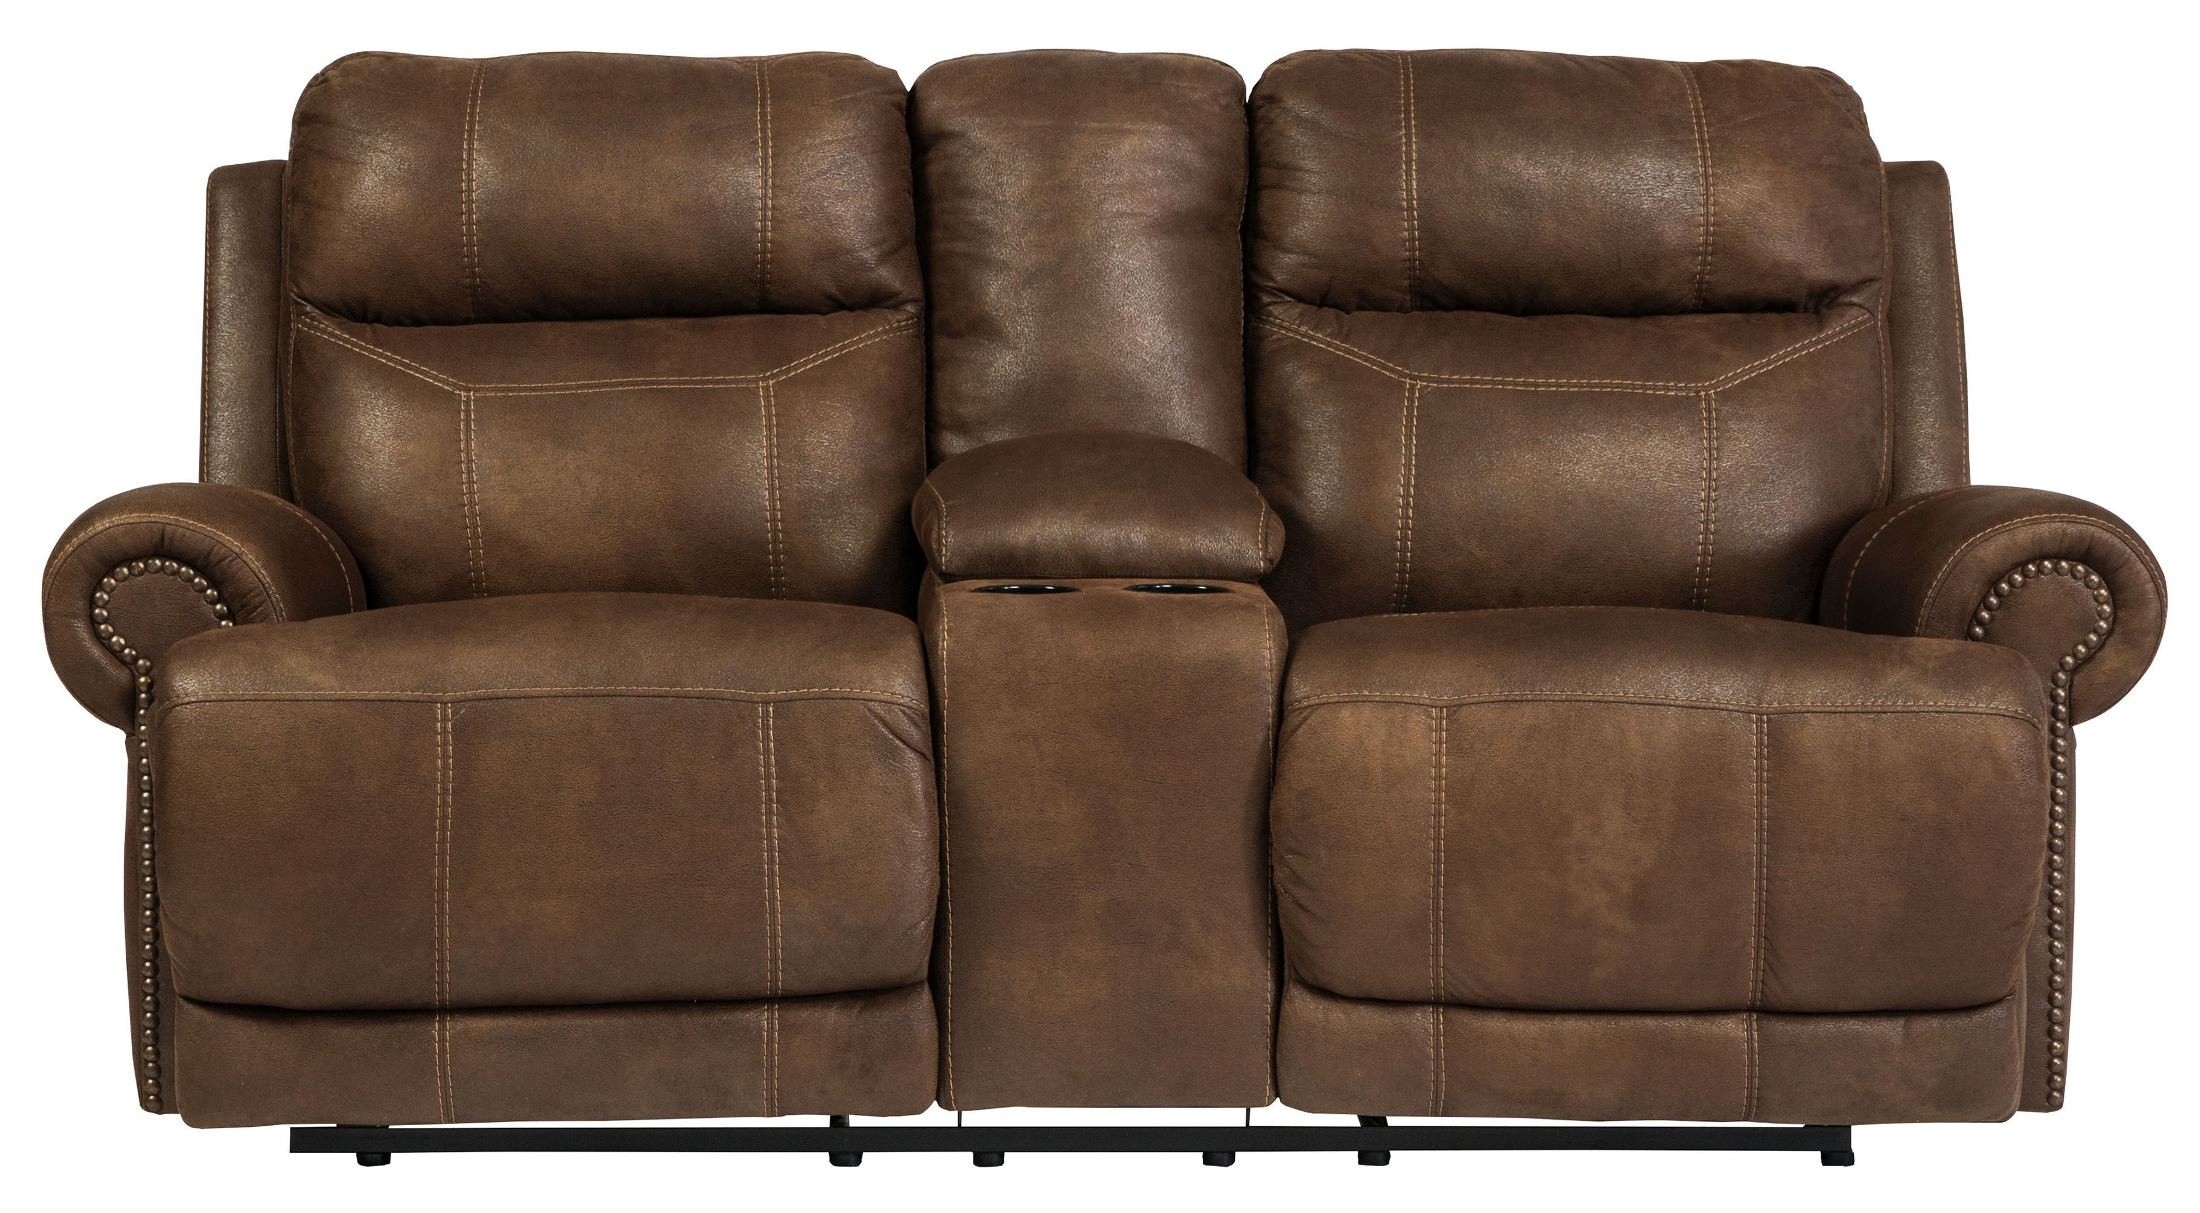 Austere Brown Double Reclining Loveseat With Console From Ashley 3840094 Coleman Furniture